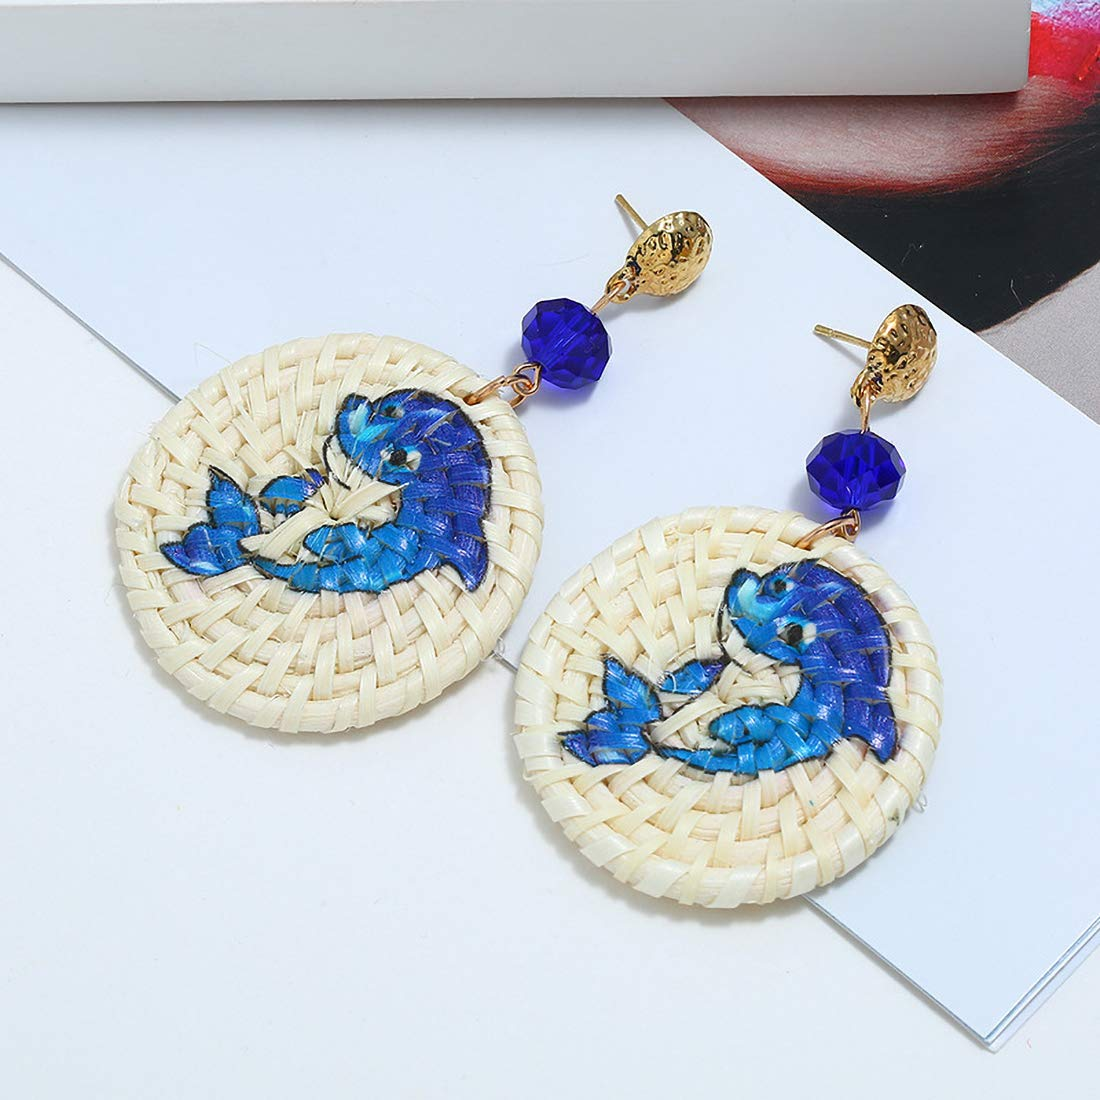 Cute animal image Handmade Bamboo Earrings Great Gifts for Women Girls JXVLUYE Charm Earring for Women Girls